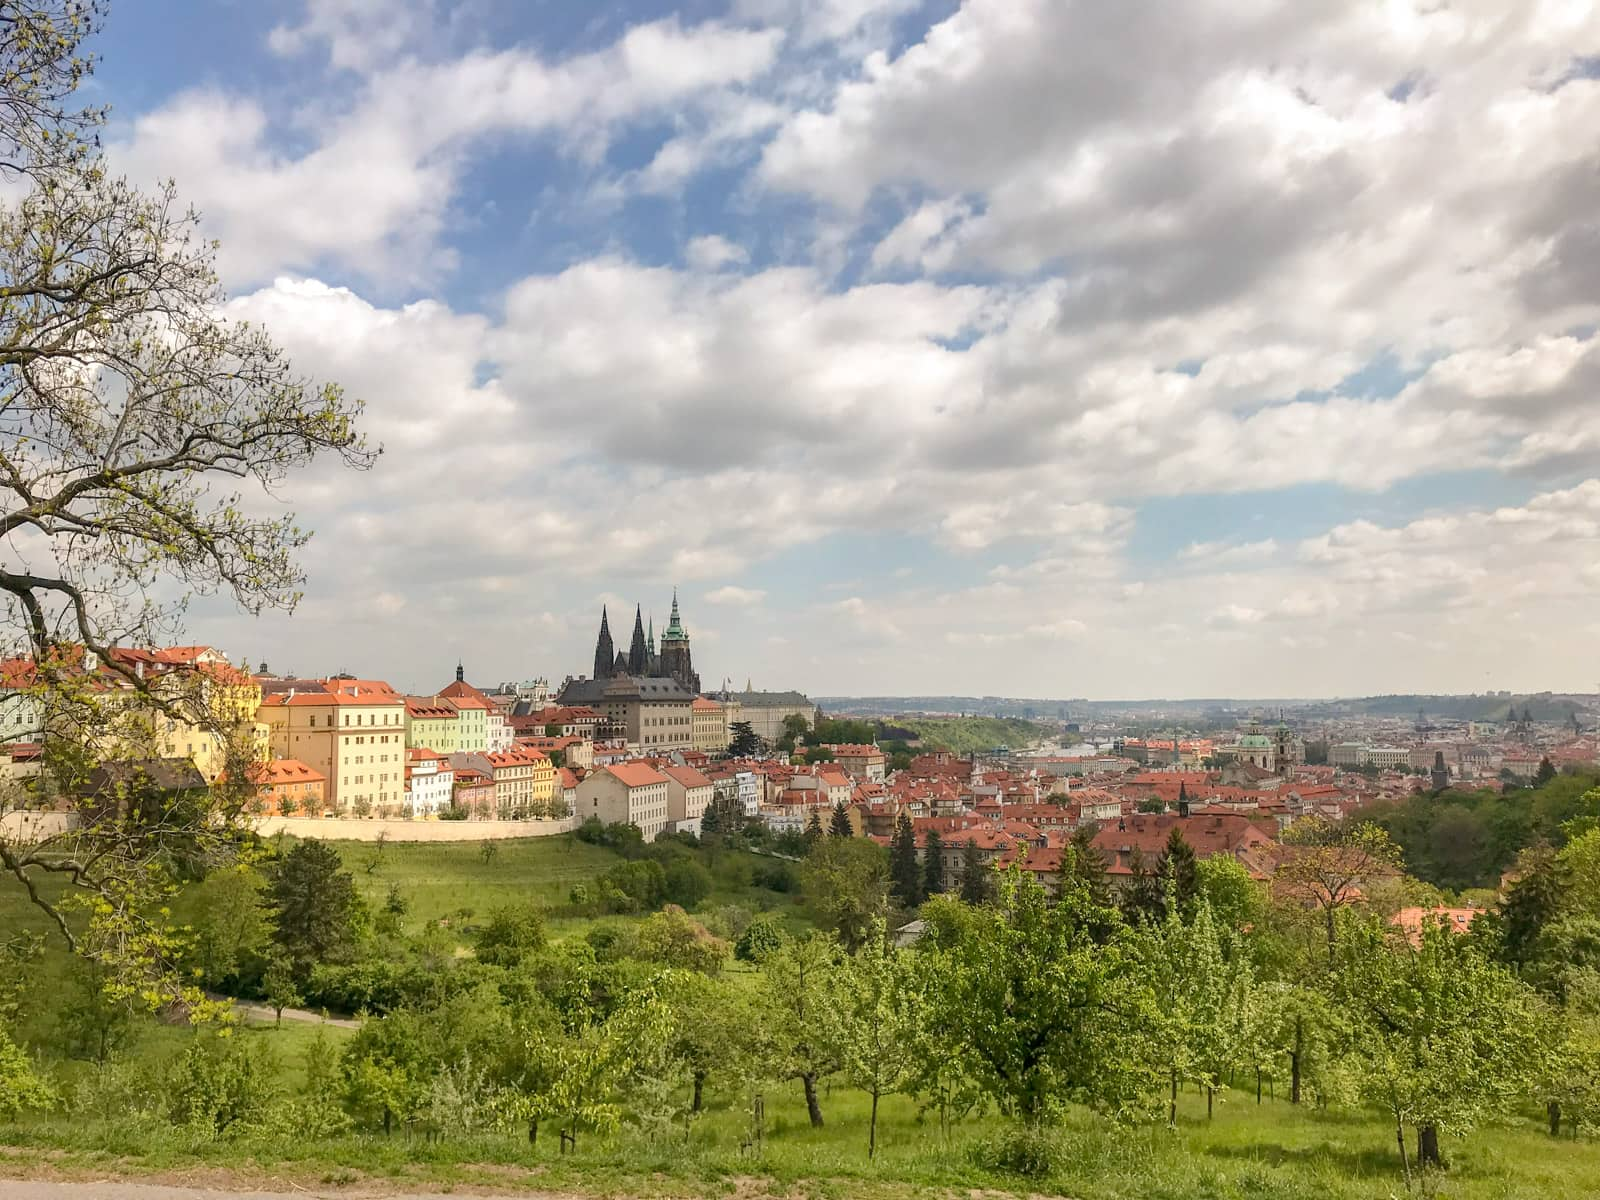 A view of the city of Prague from a high vantage point, with green hills in the foreground and many old houses in the background. The sky is blue with white clouds.